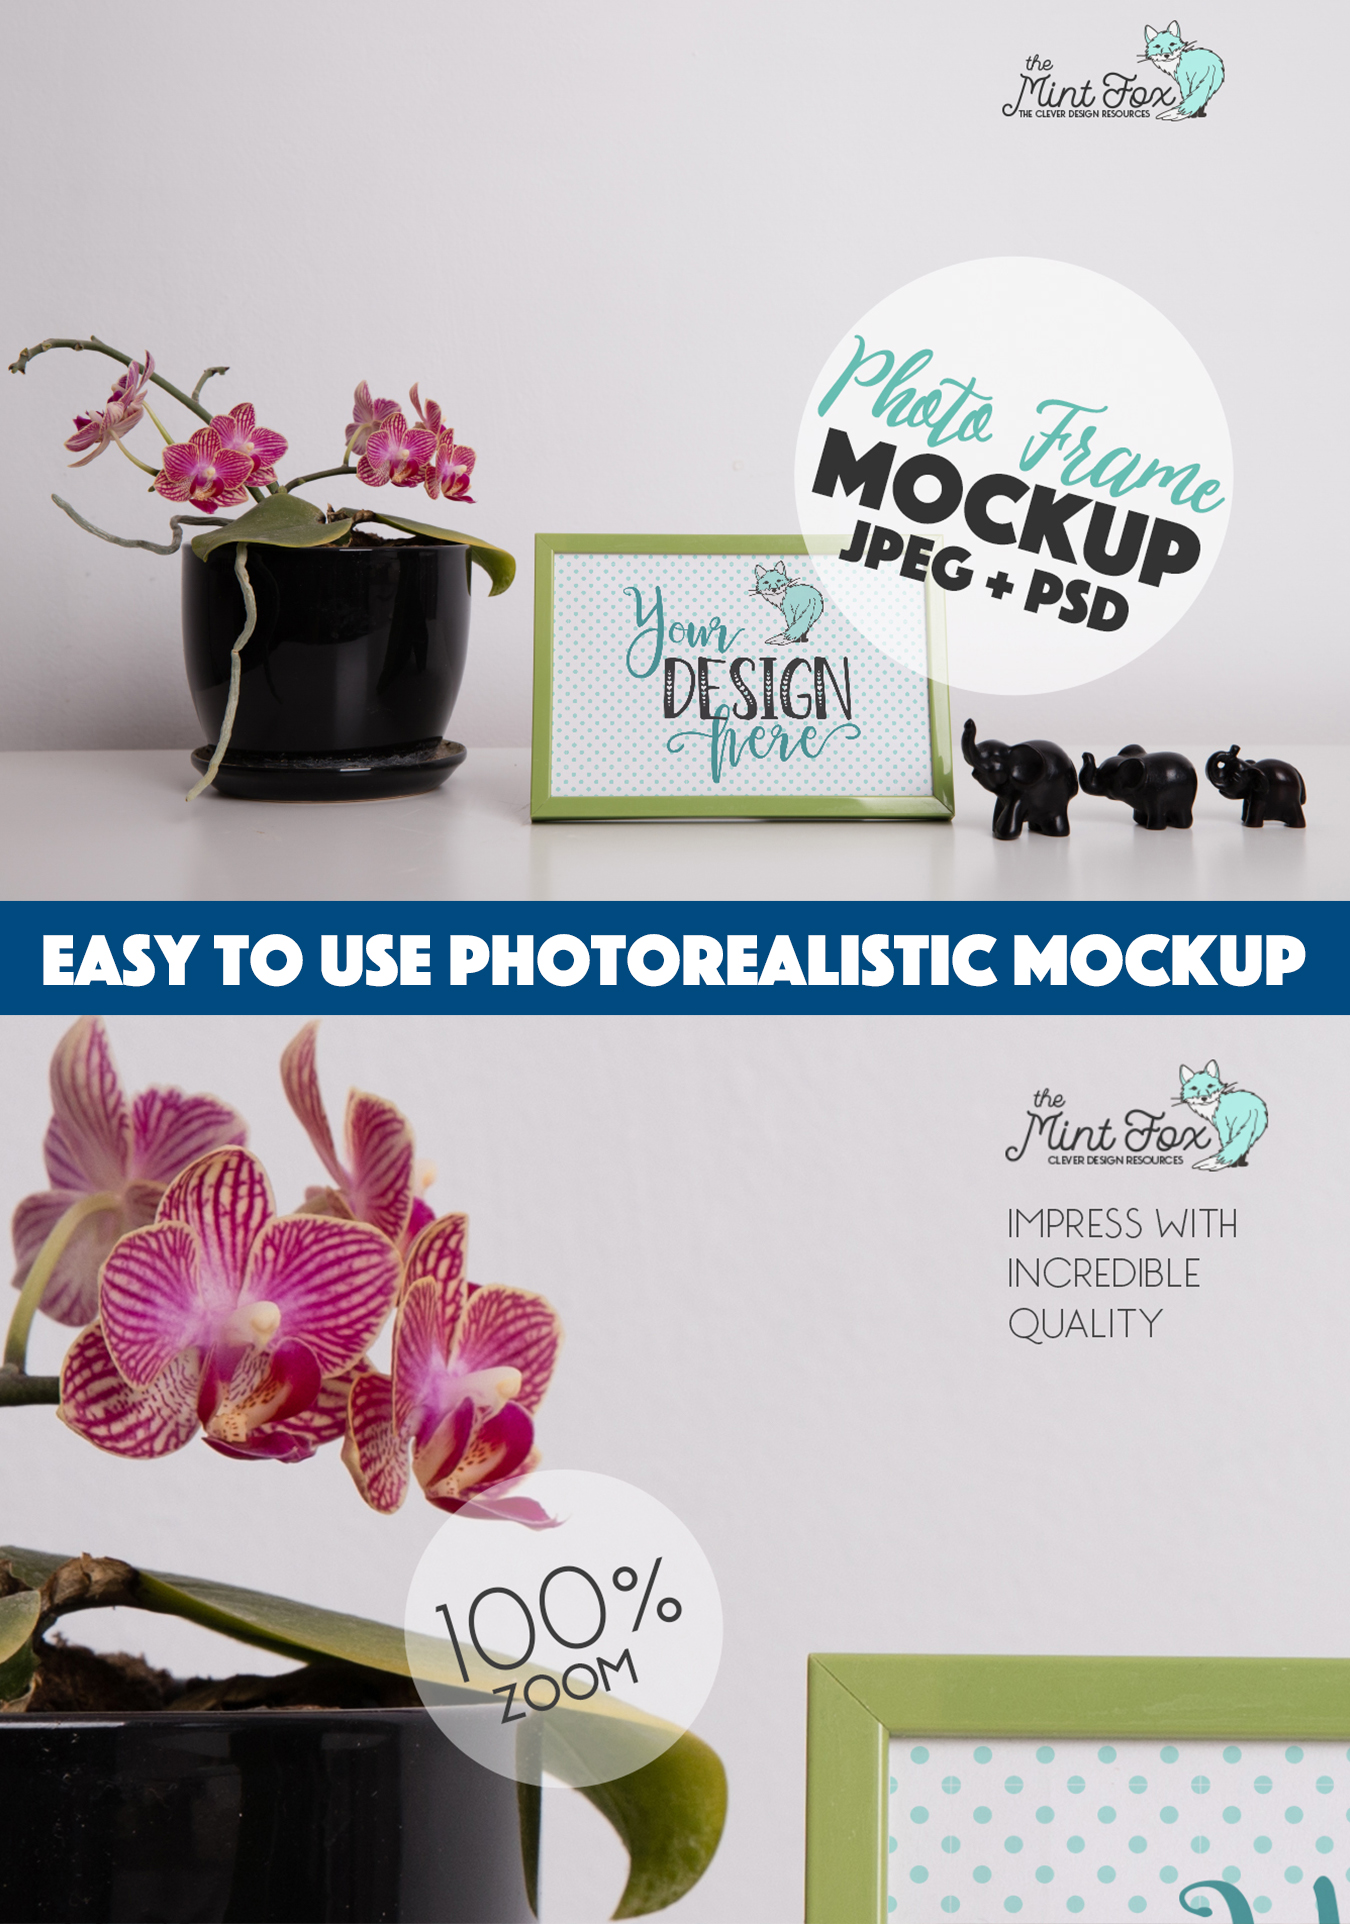 Frame Mockup with Orchid and Elephants | JPG & PSD Mock Up example image 2